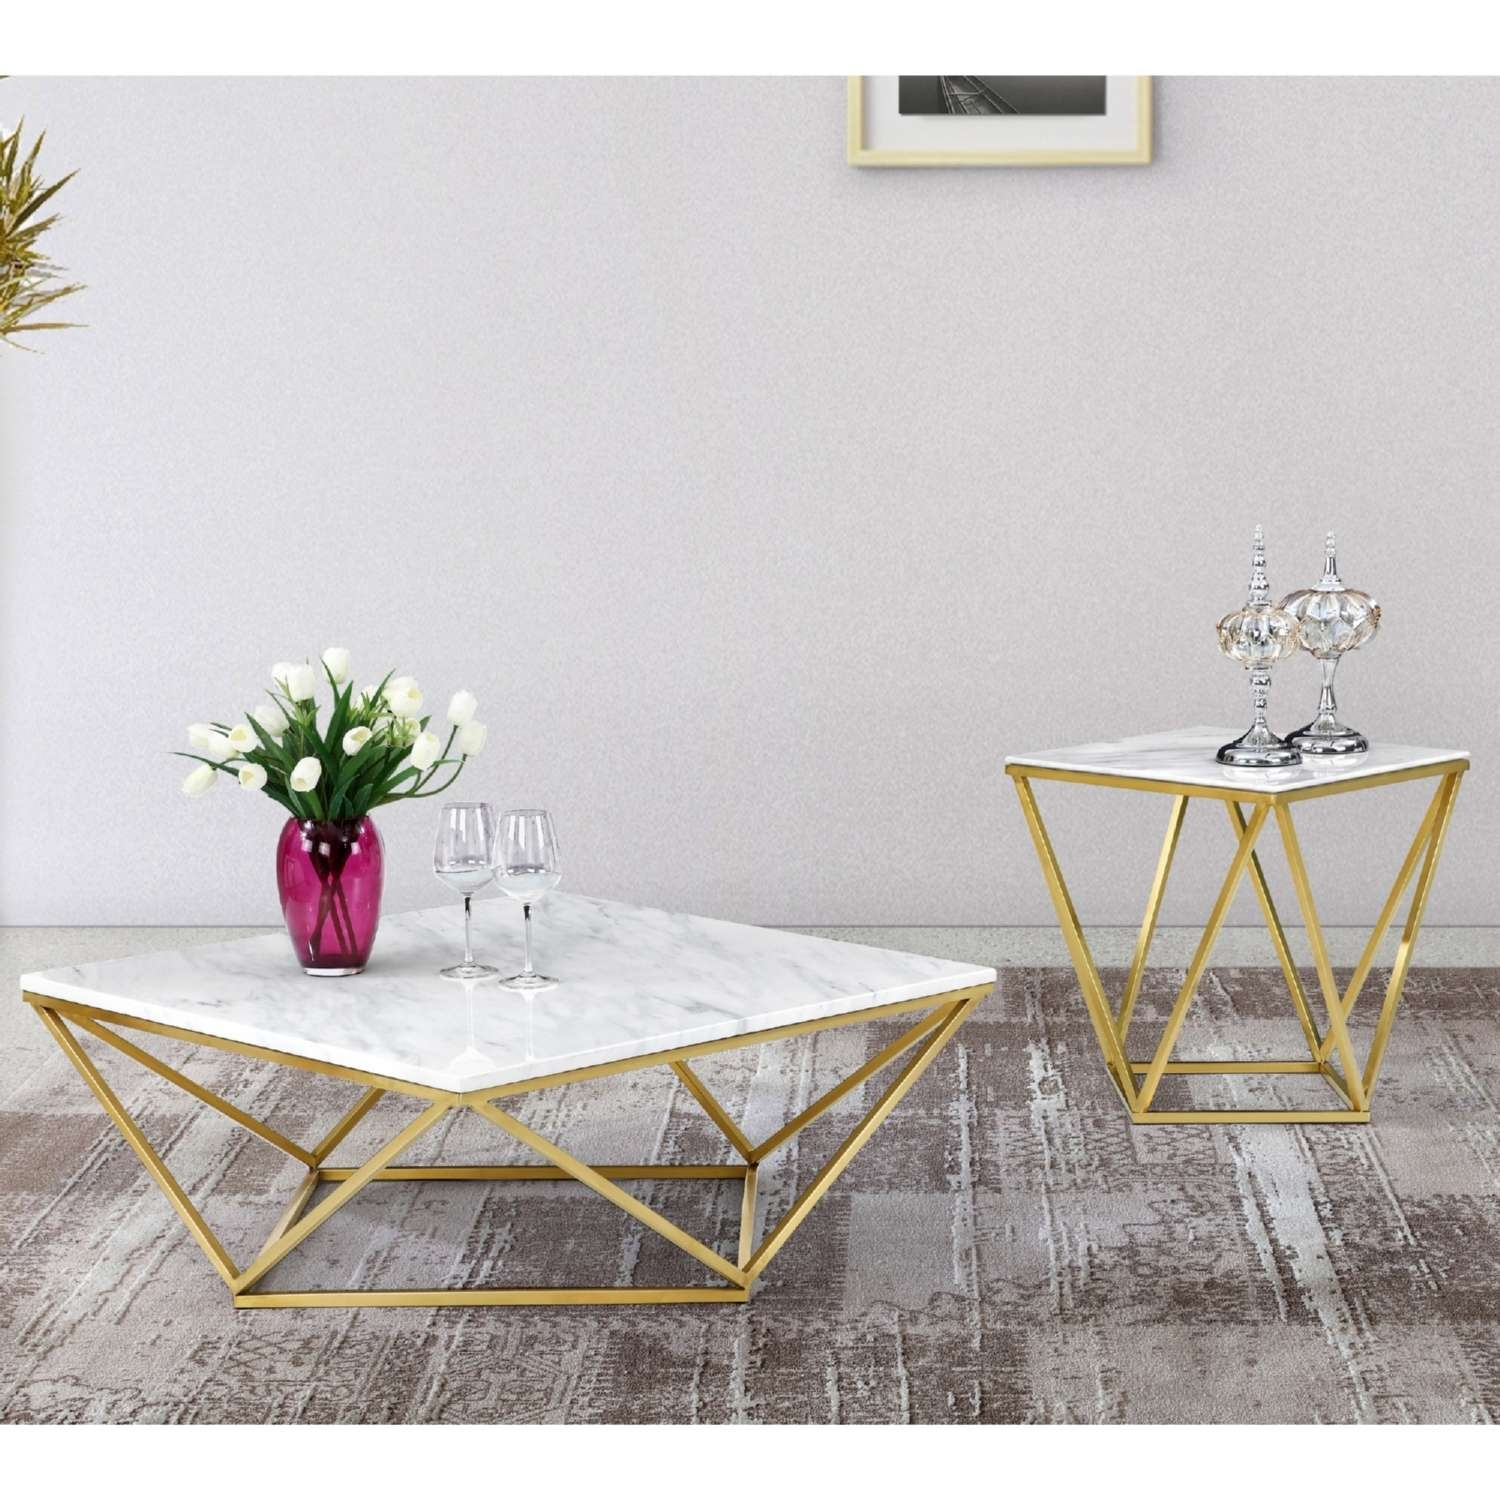 Meridian Furniture 216 C Mason Gold Geometric Coffee Table W Throughout Newest C Coffee Tables (View 10 of 20)